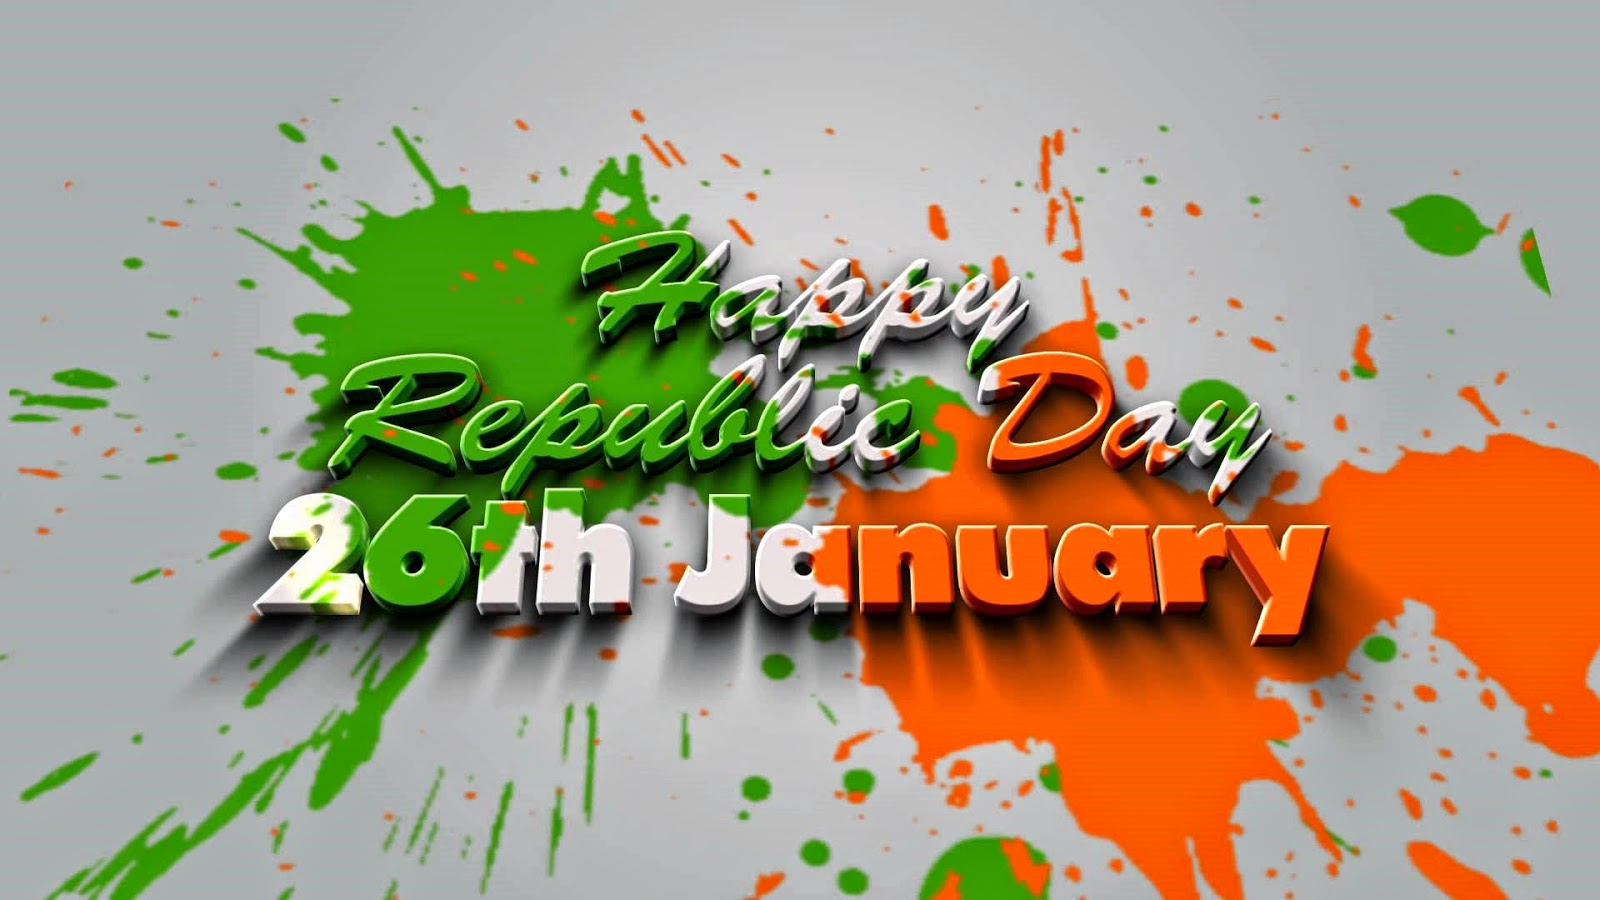 26 january republic day painting wallpapers